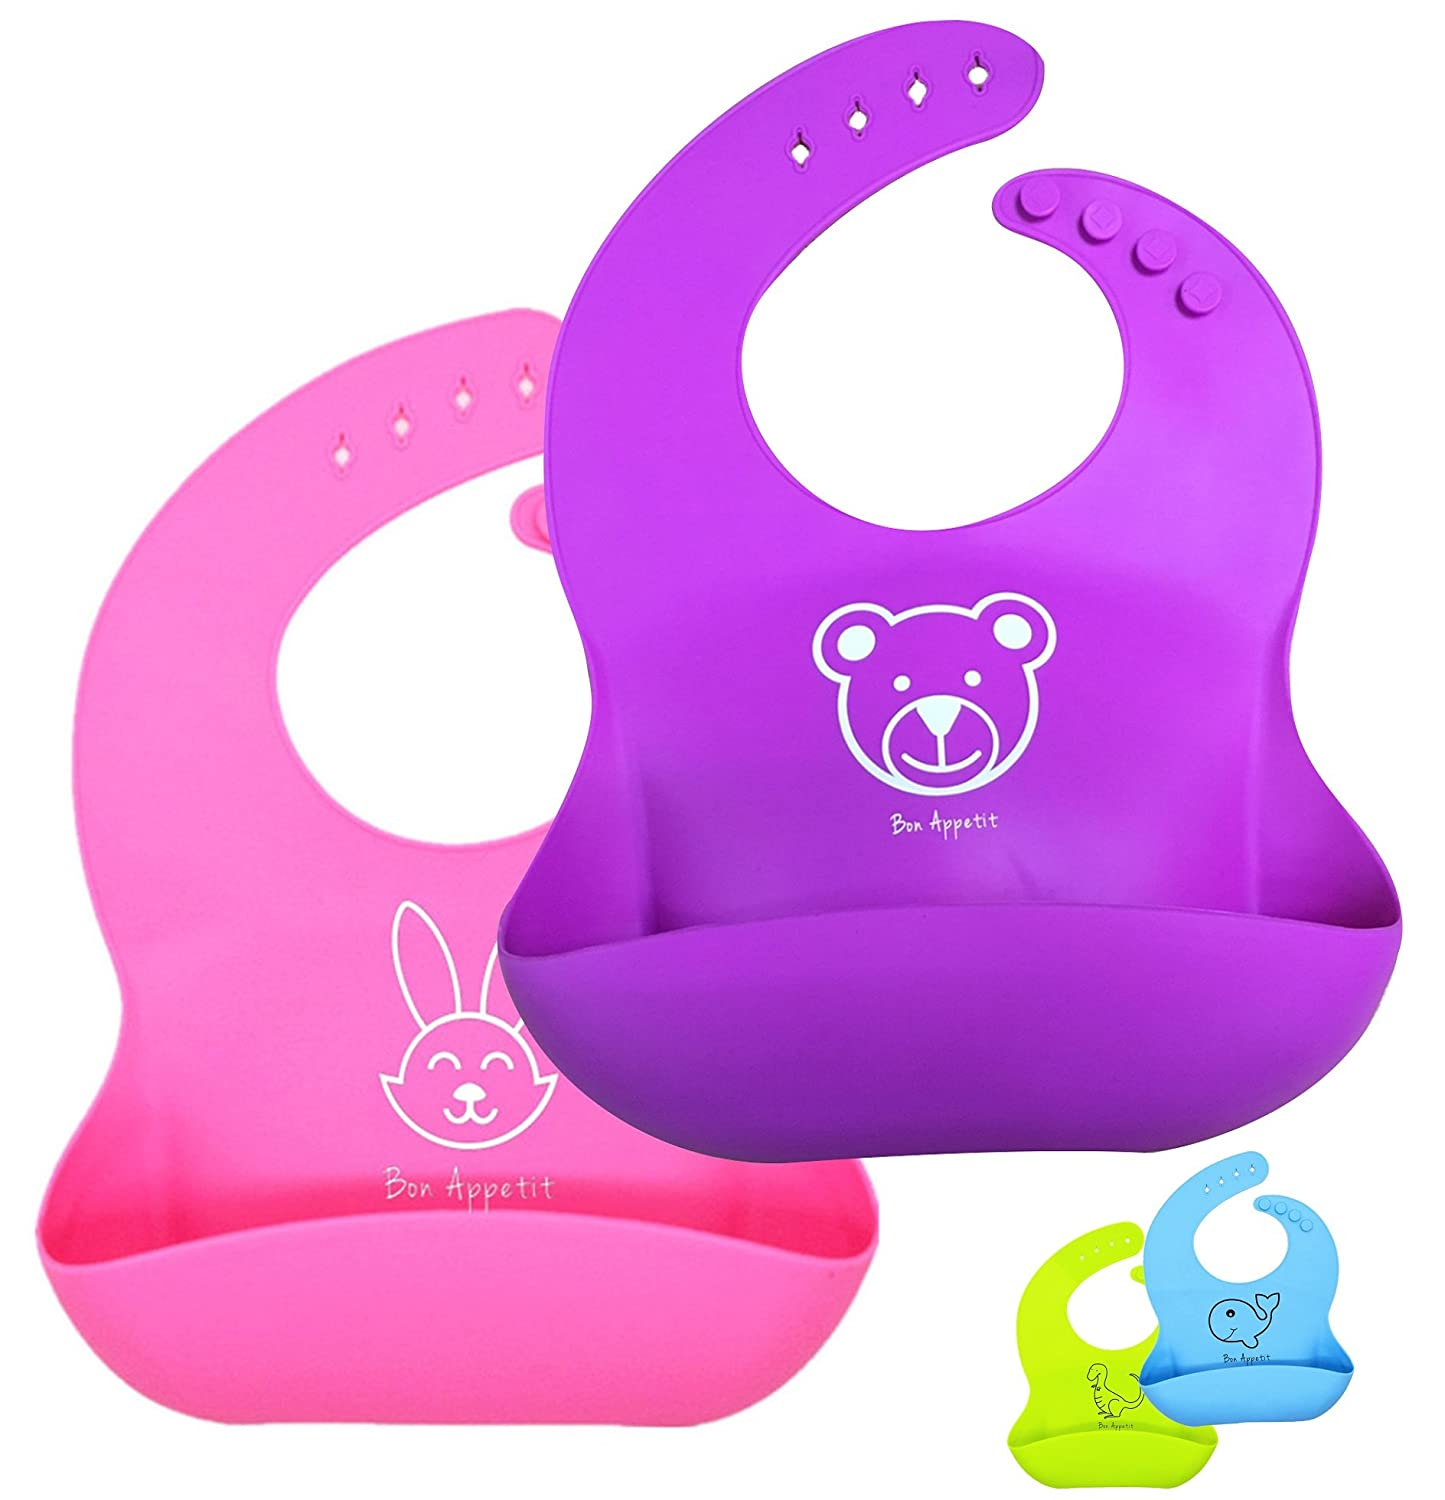 Clothing & Accessories Waterproof Silicone Baby Bib Light Weight Comfortable Easy Wipe Clean For Infant and Toddler Baby Pink/Purpl